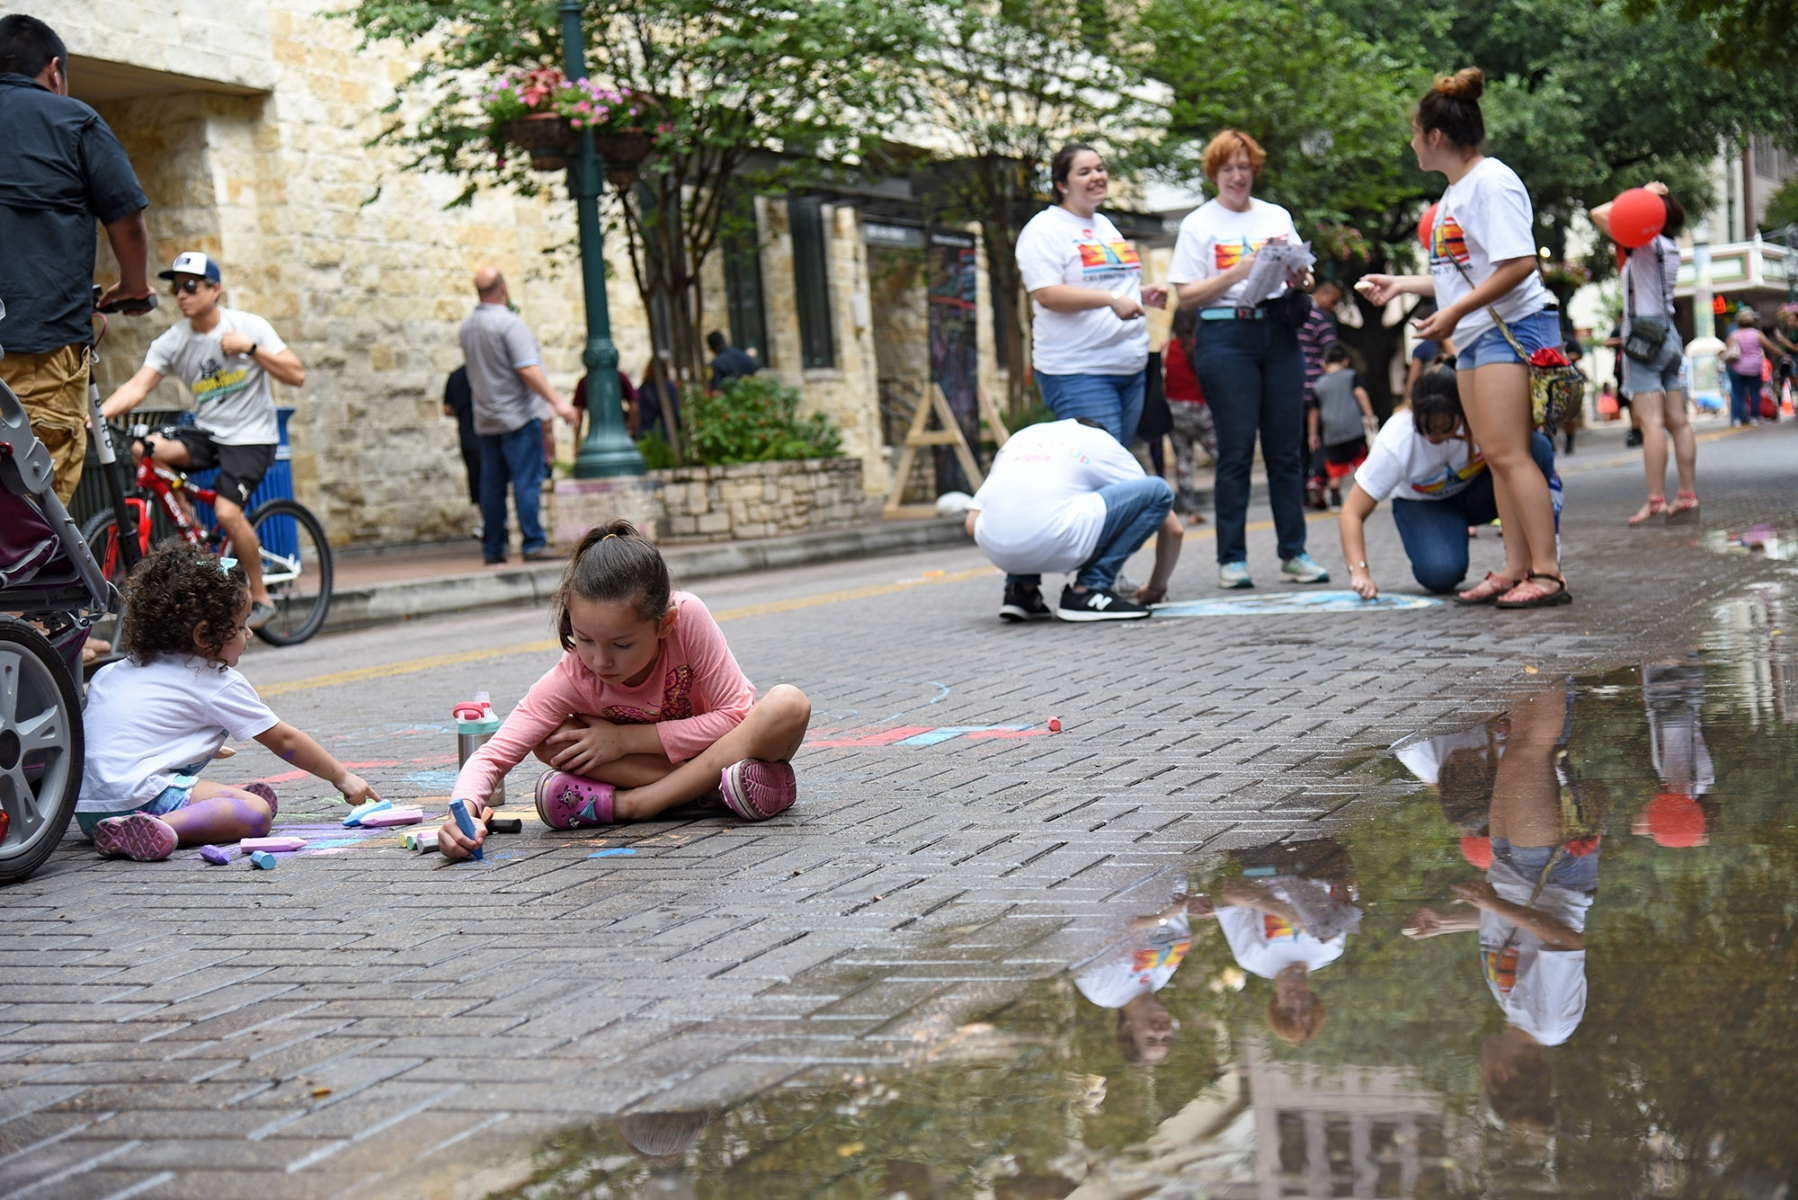 Sisters Reagan and Andrea Morin draw at the 15th annual Chalk It Up after a breif rain Oct. 13 in Downtown San Antonio.  <em><b>Photo by V. Finster | Heron</b></em>